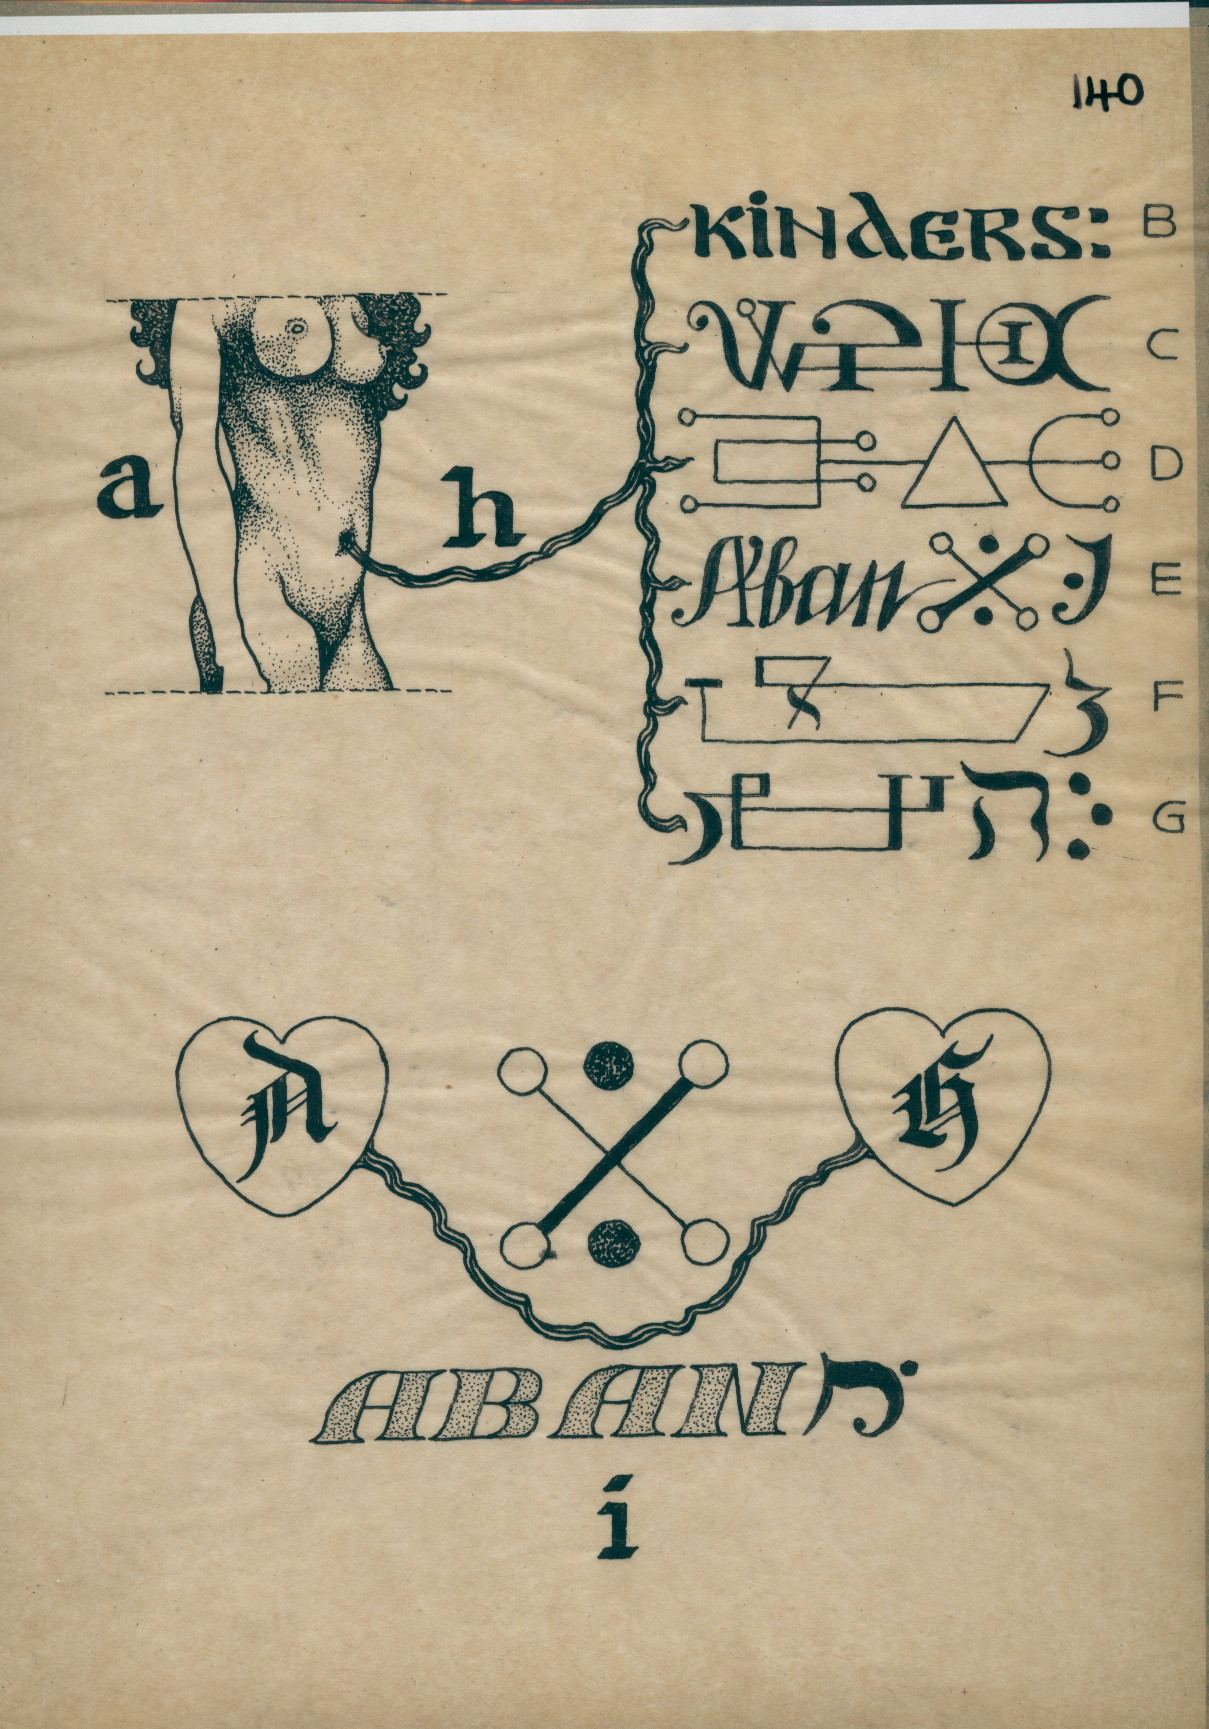 R1140 Drawing Of A Female Torso Connected To Words And Symbols